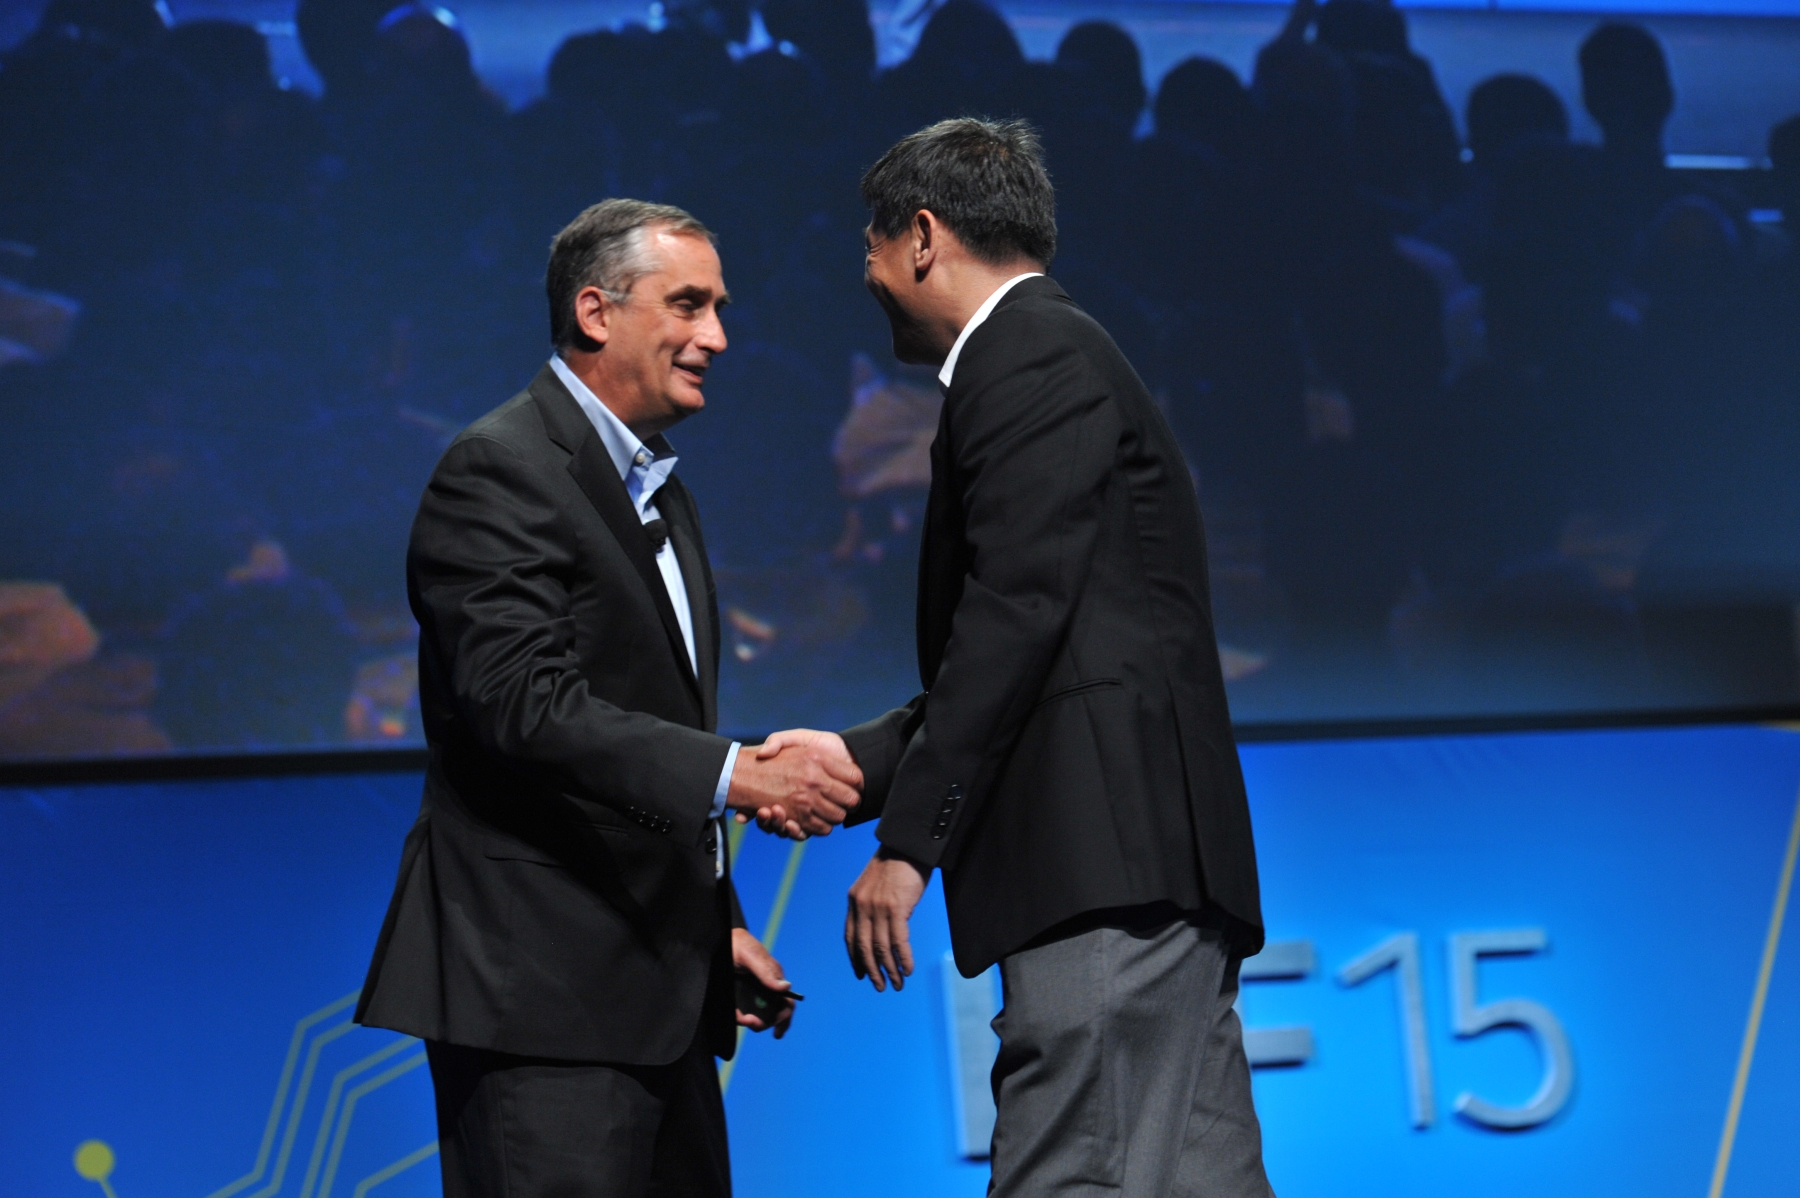 Intel Marks 30 Years in China with New Products, Investments